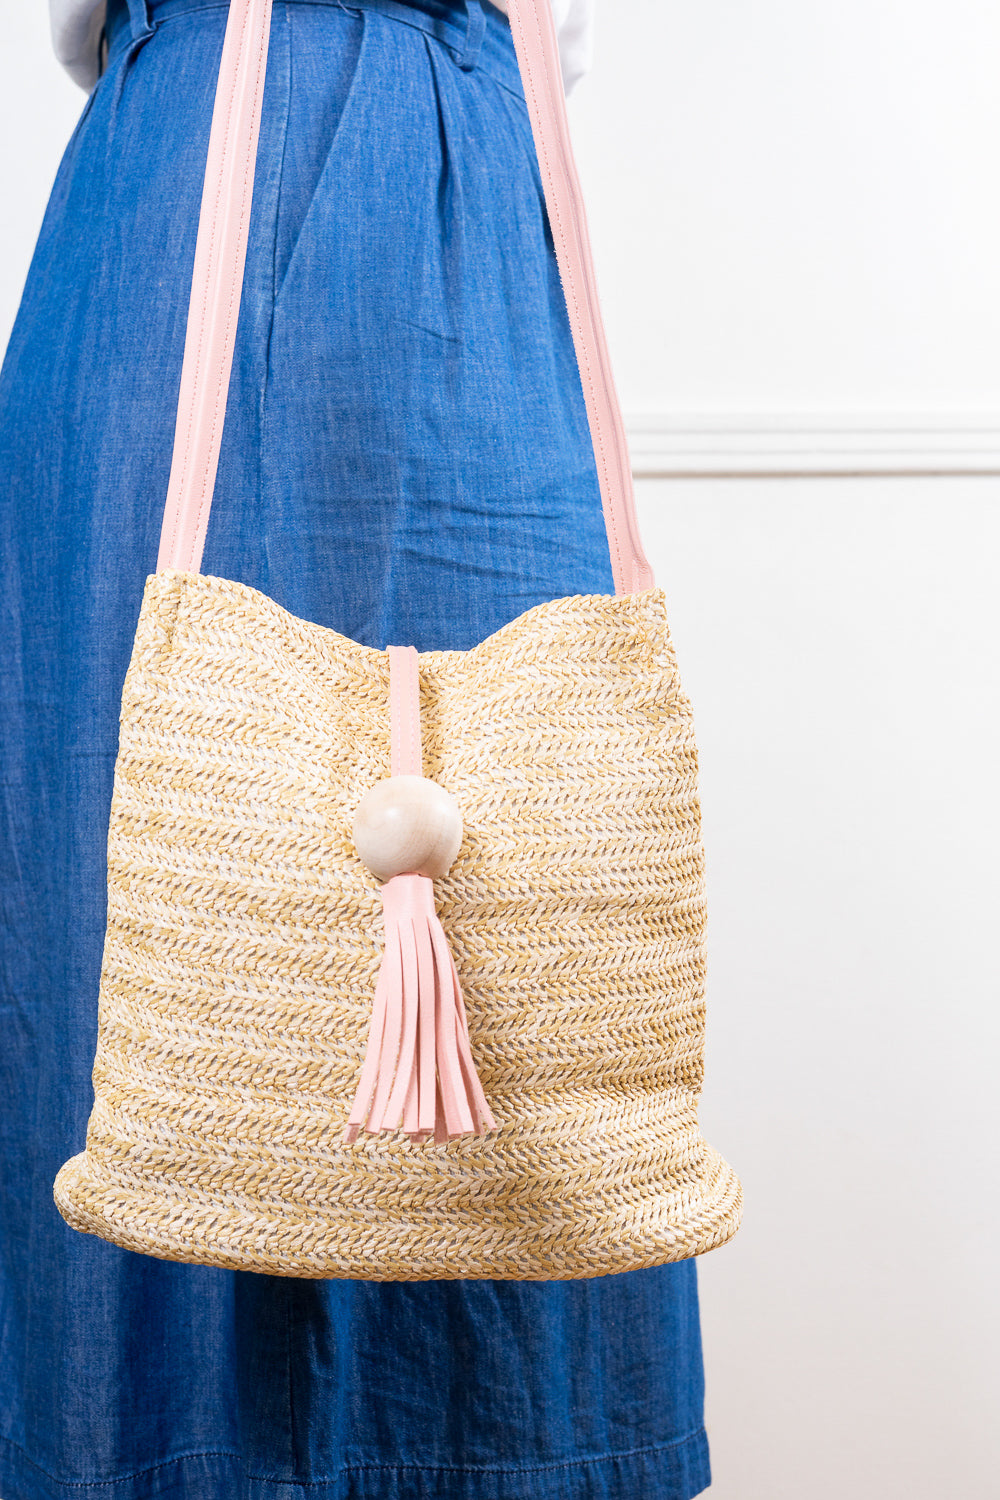 pink tassel shoulder bucket bag straw tote bag with jean skirt